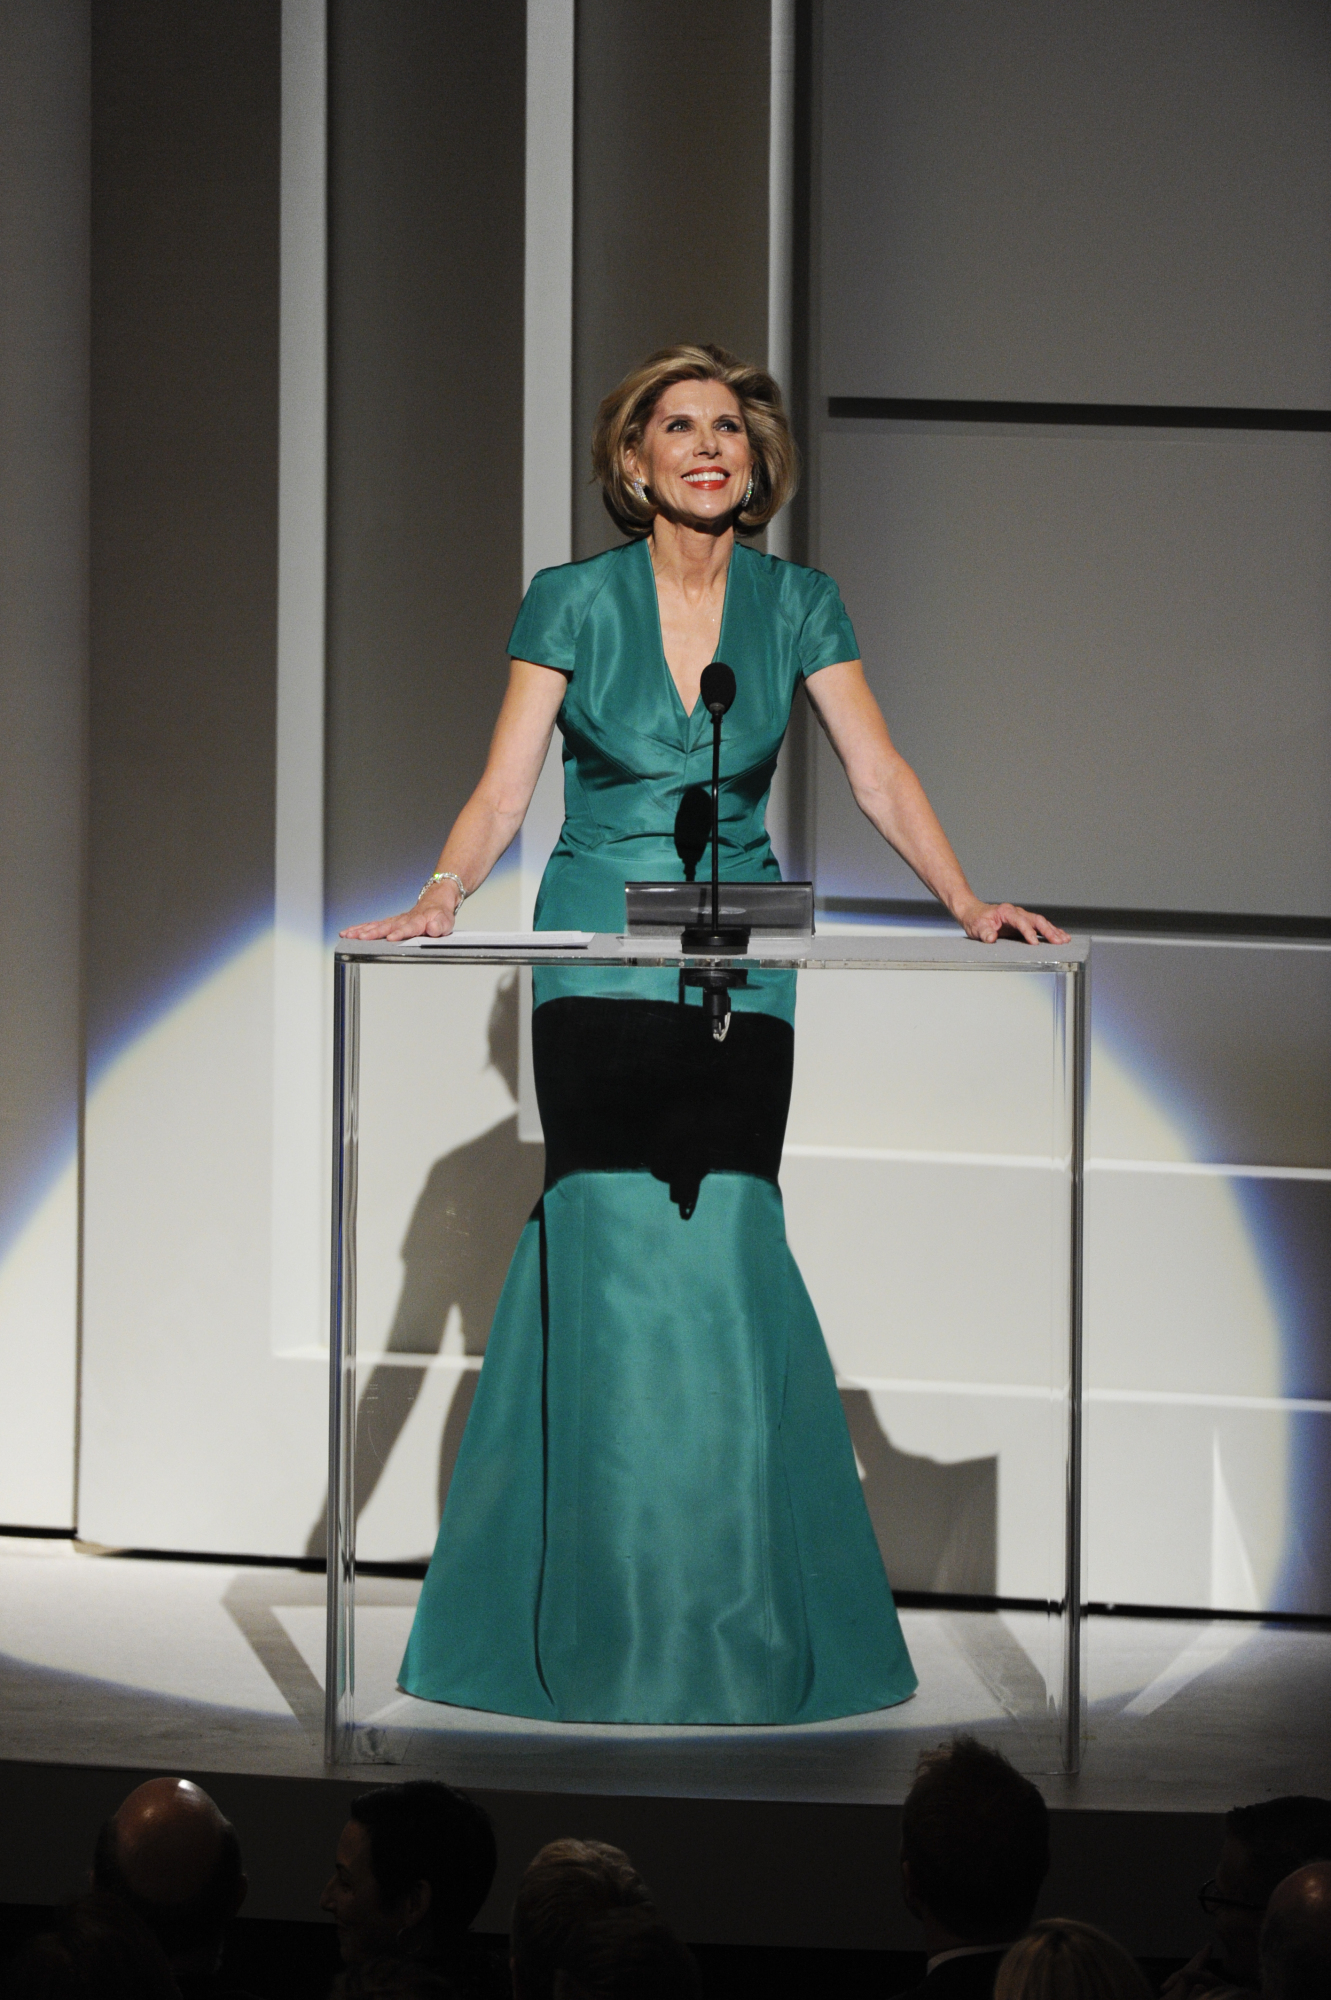 Christine Baranski Speaks at the 37th Annual Kennedy Center Honors